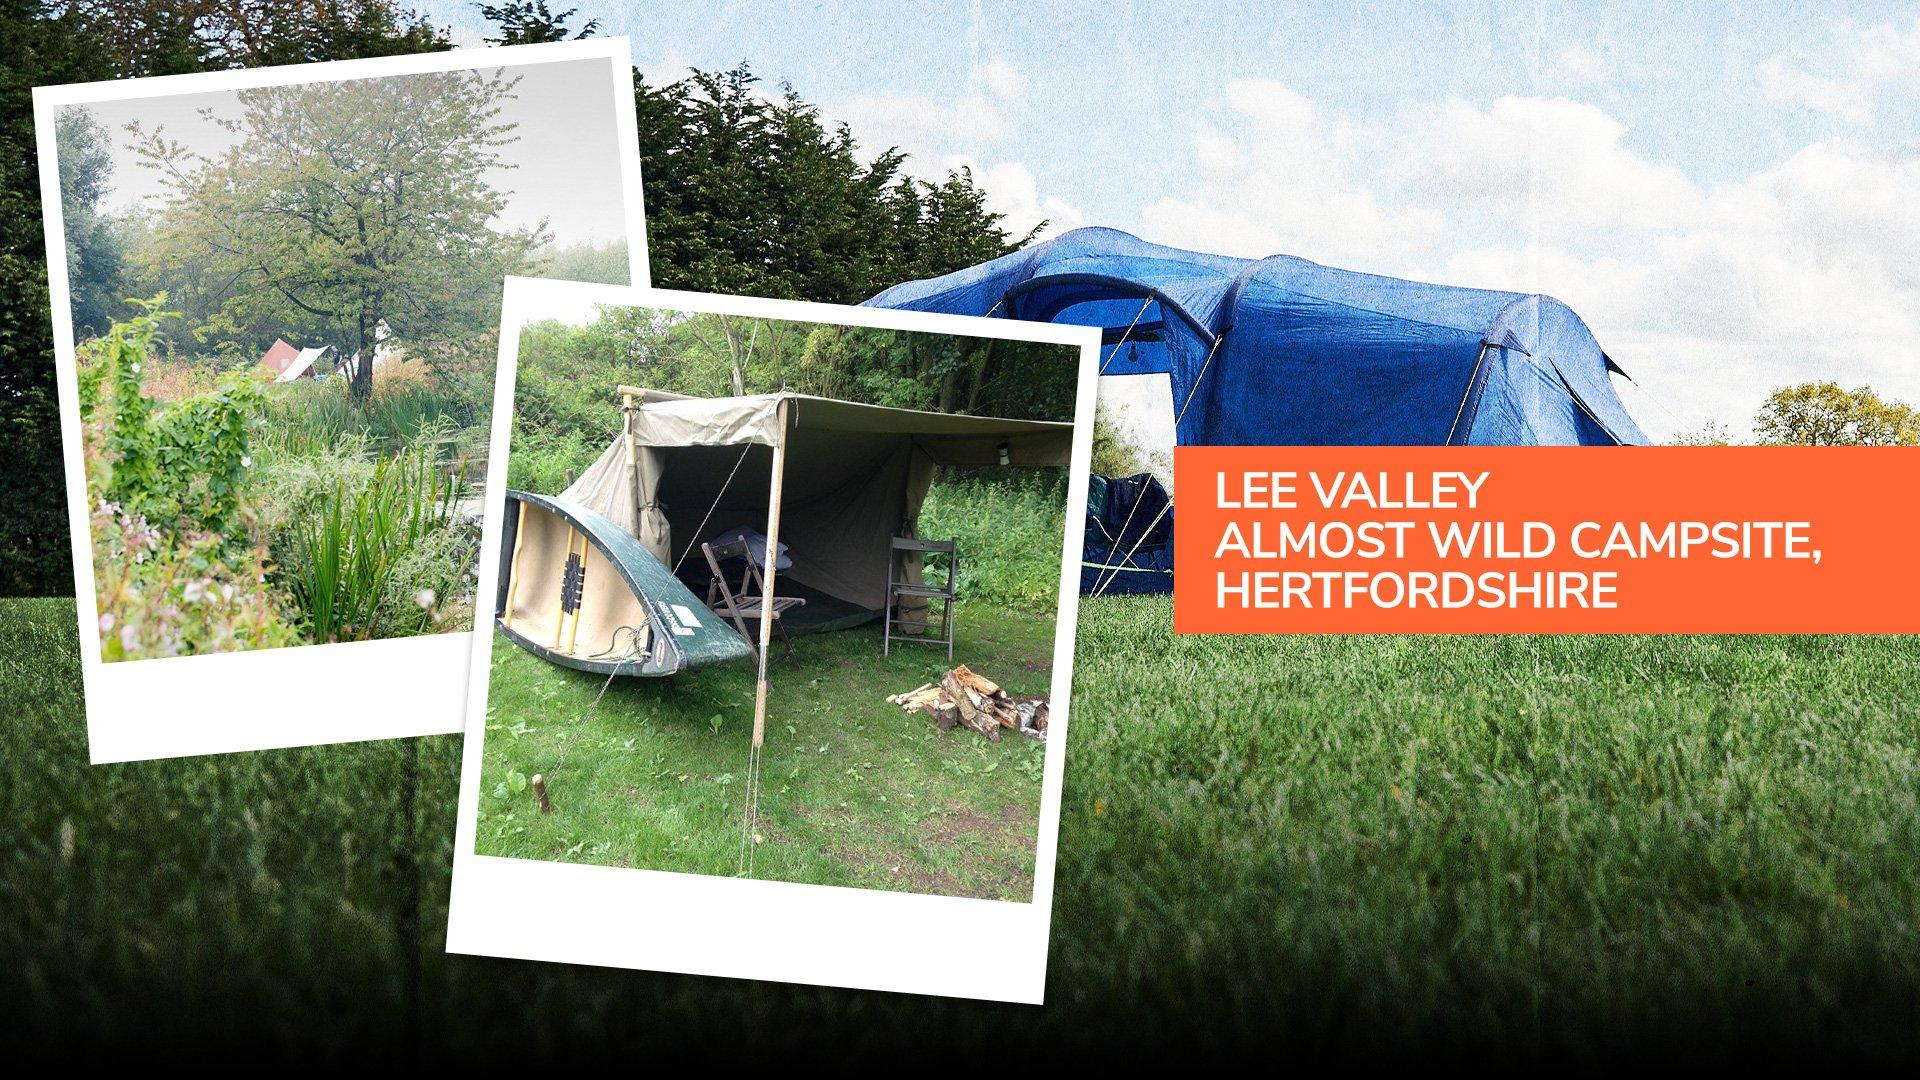 Tents pitched by the river at Lee Valley Almost Wild Campsite, Hertfordshire